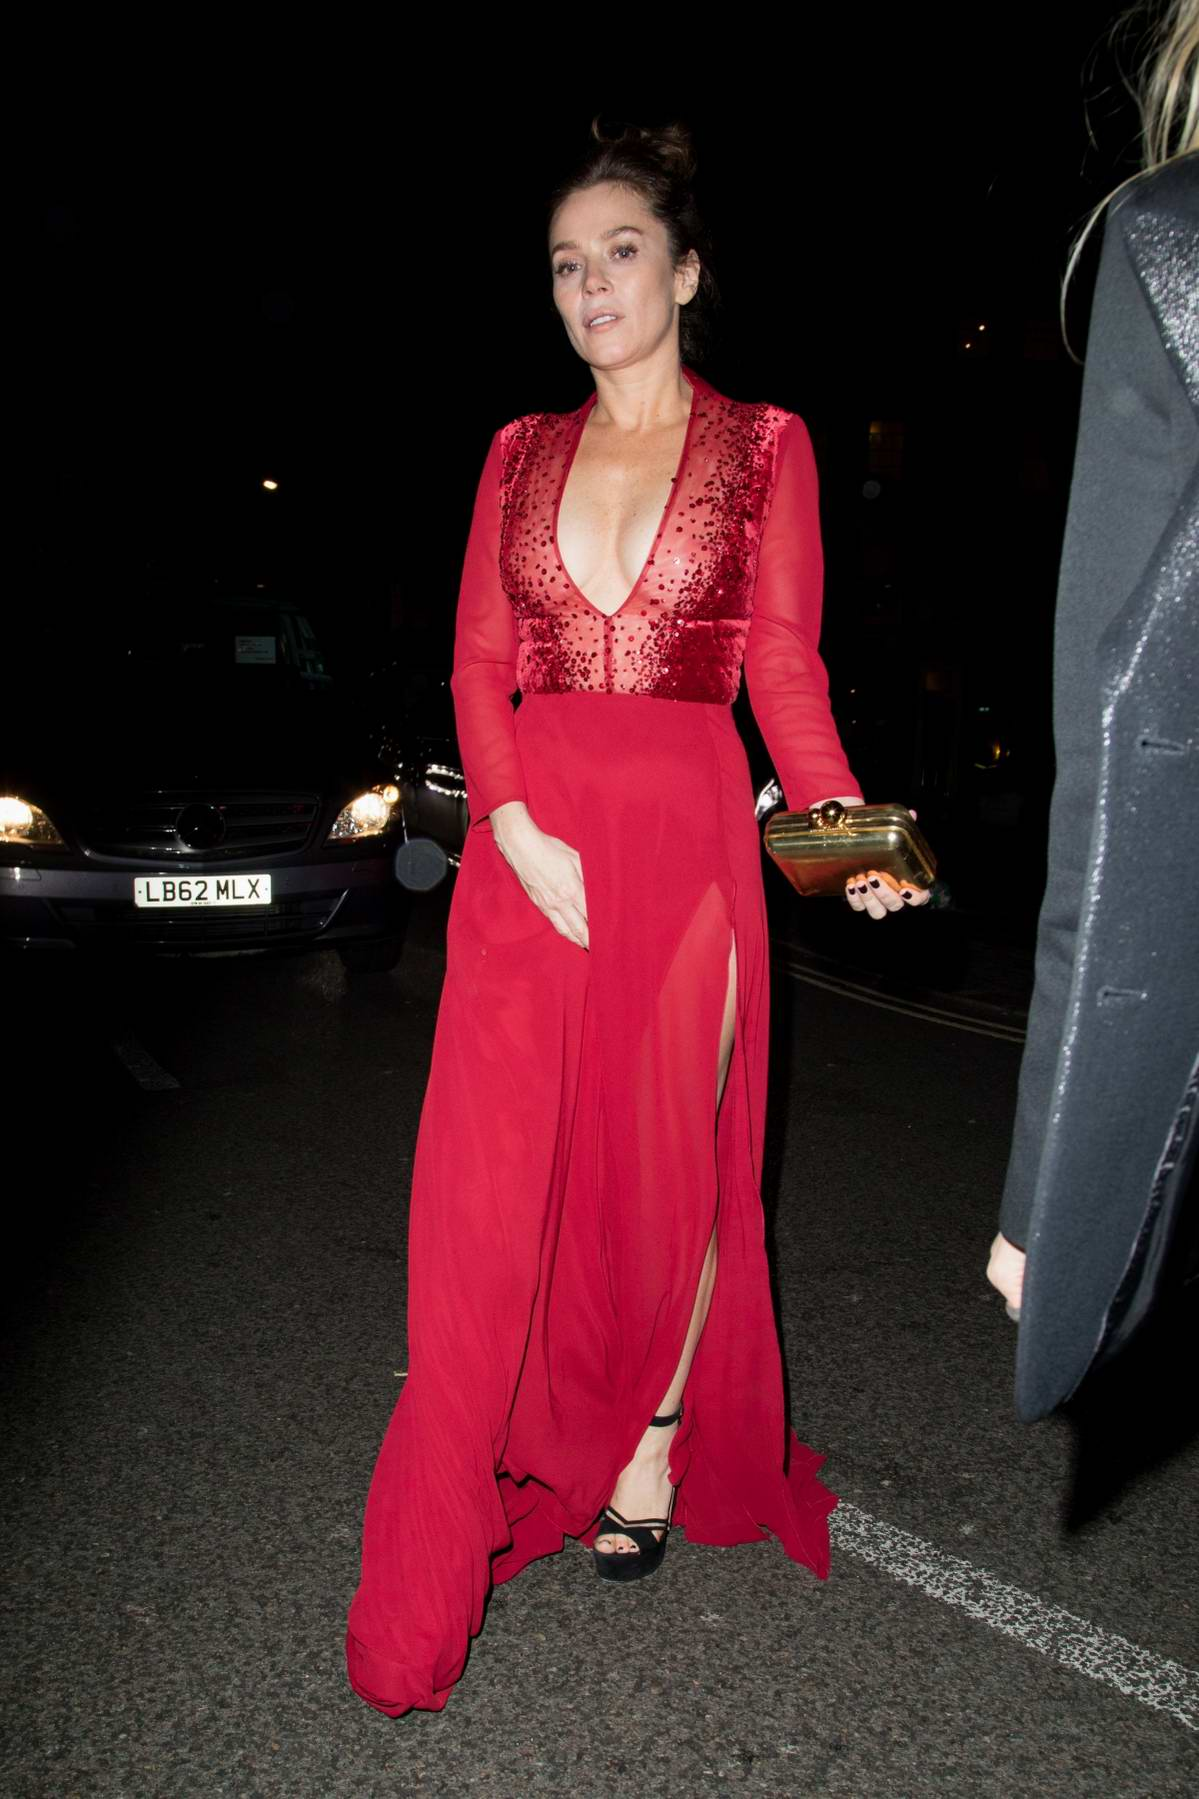 Anna Friel arrives at the Warner Brother after-party at Freemasons in London